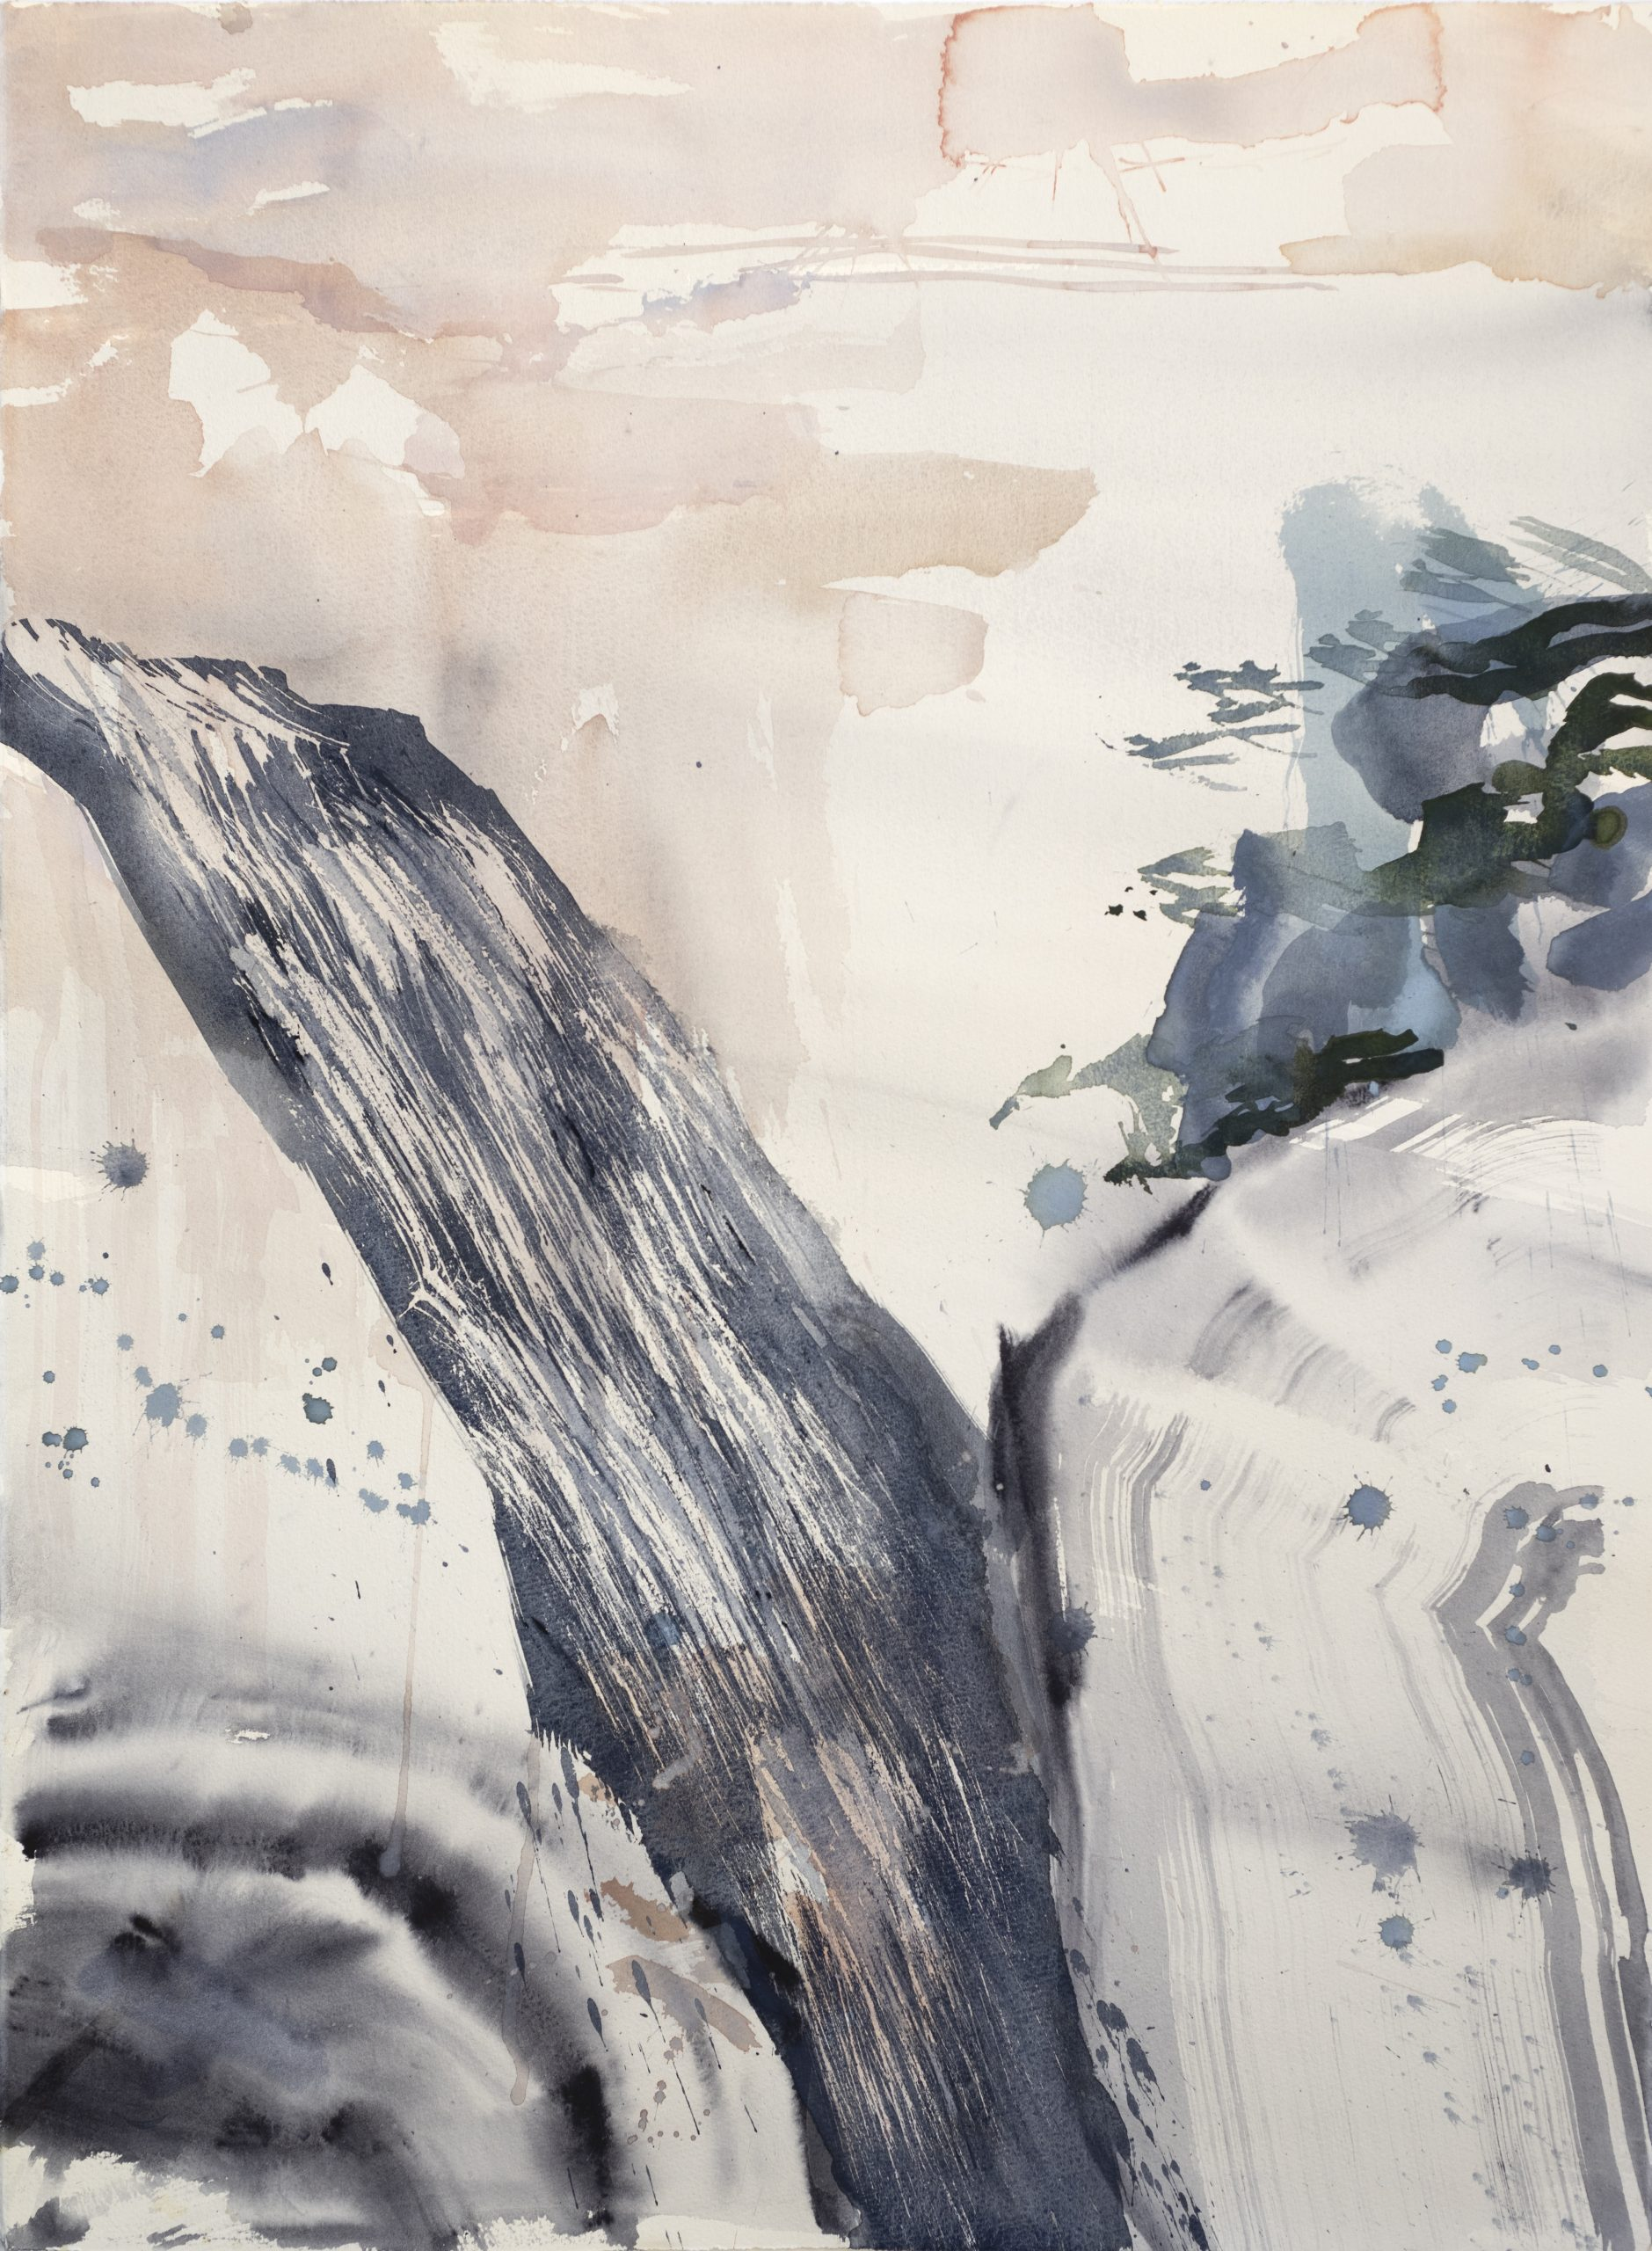 Danielle Creenaune – Finalist in 'FLOW' National Contemporary Watercolour Prize 2021 at Wollongong Art Gallery